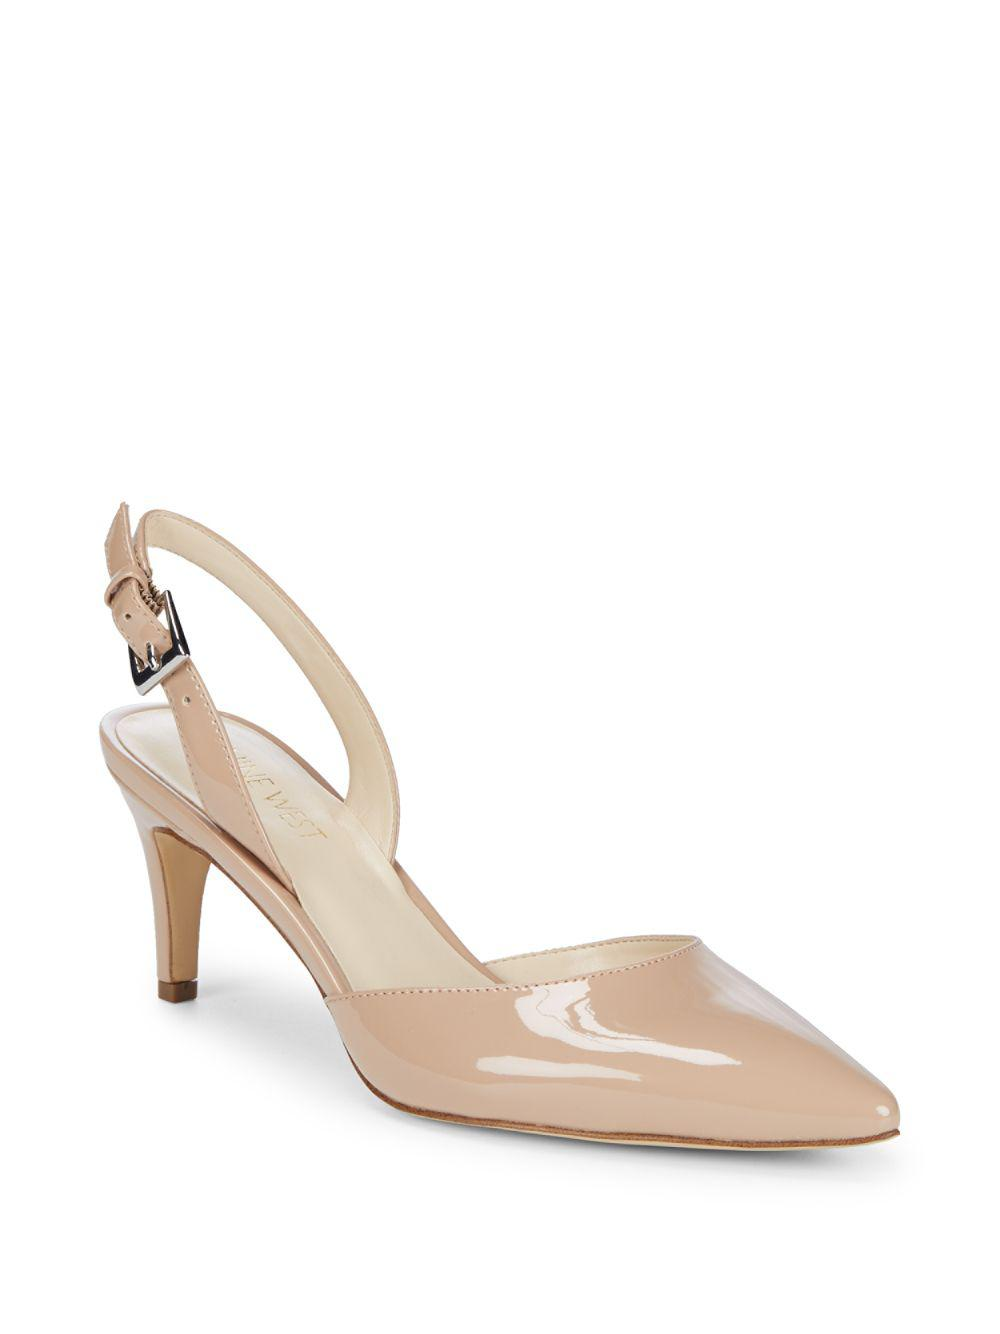 69270ae8a74 Lyst - Nine West Epiphany Slingback Heels in Natural